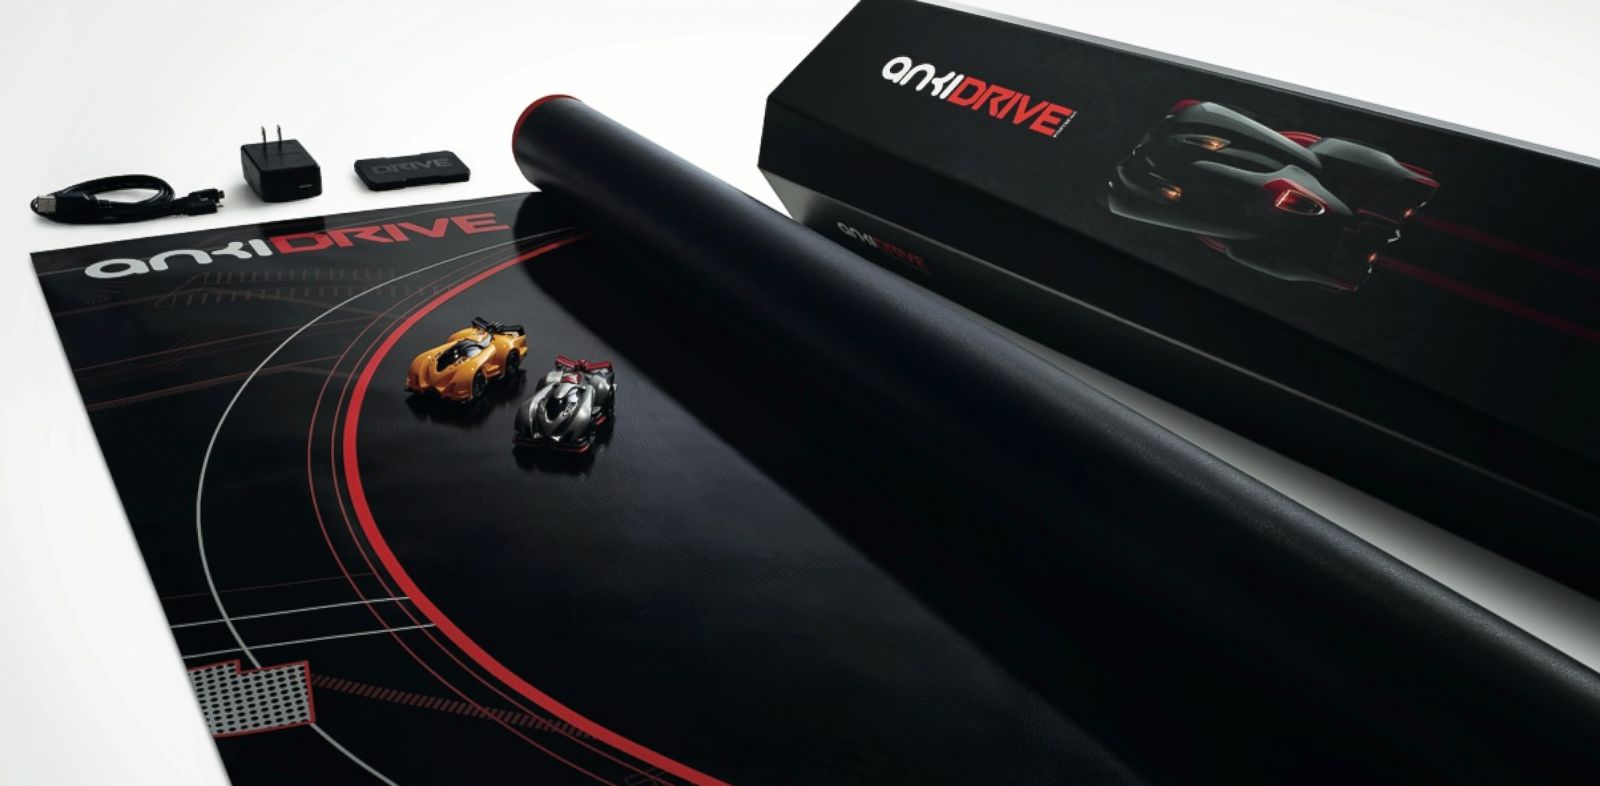 PHOTO: Drive, the debut product from Anki, brings advanced artificial intelligence to the household in the form of toy cars.